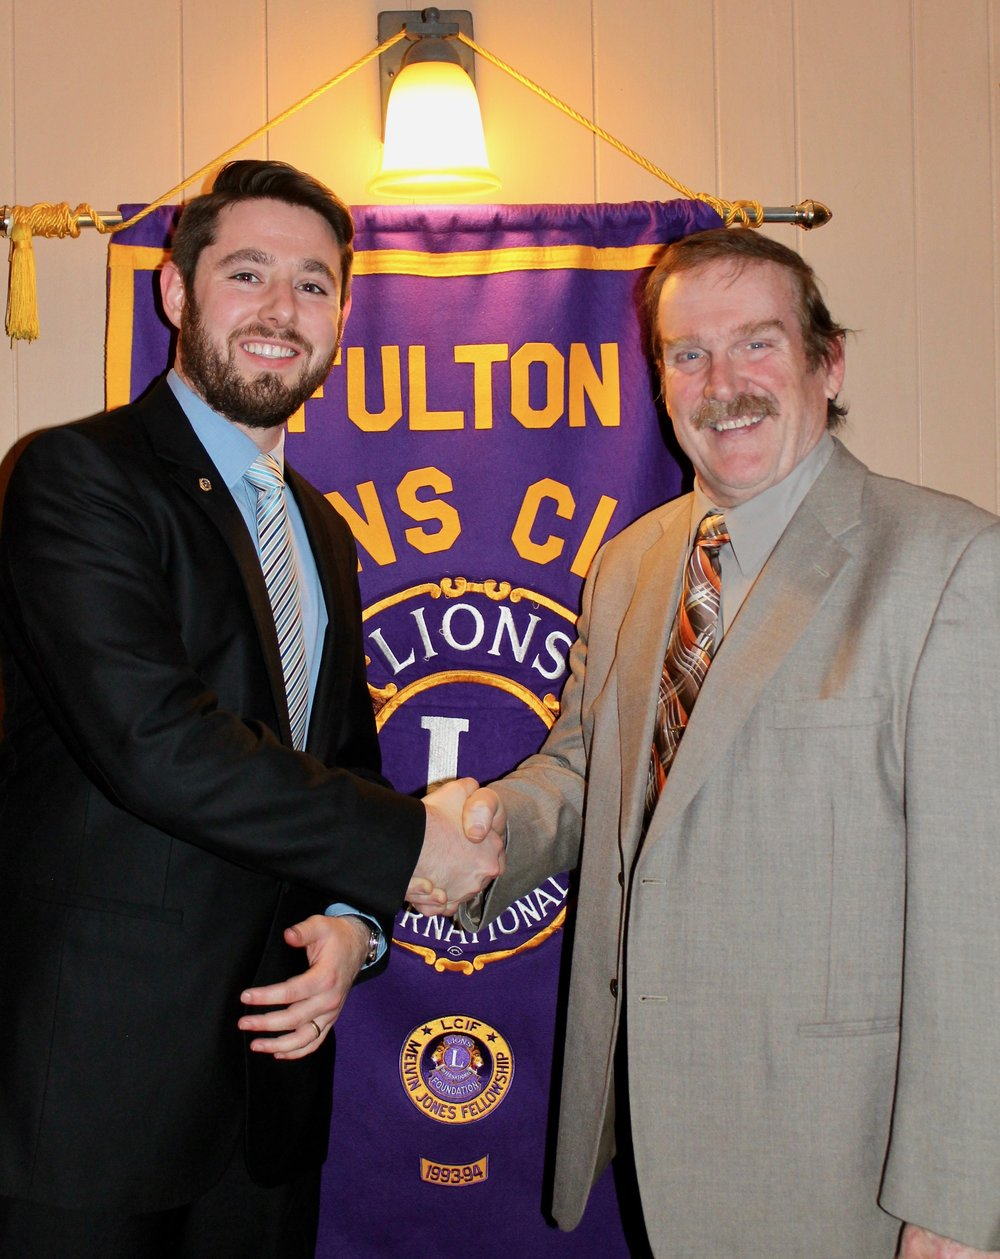 Fulton Lions President Zachary Merry, right, thanks James Karasek, advocacy manager, ARISE Oswego County office, for his presentation on diabetes awareness and treatment at the club's November meeting. Karasek discussed his personal experiences with diabetes, as well as the ARISE Diabetes Self-Management Program, open to people with disabilities and type 2 diabetes. Topics include: techniques to handle fatigue, stress, pain and emotions; improving strength and endurance; healthy eating, proper monitoring,; appropriate use of medication; skin and footcare; and questions to ask your healthcare provider. Karasek can be reached at (315) 324-4088, ex. 206, or at jkarasek@ariseinc.org.